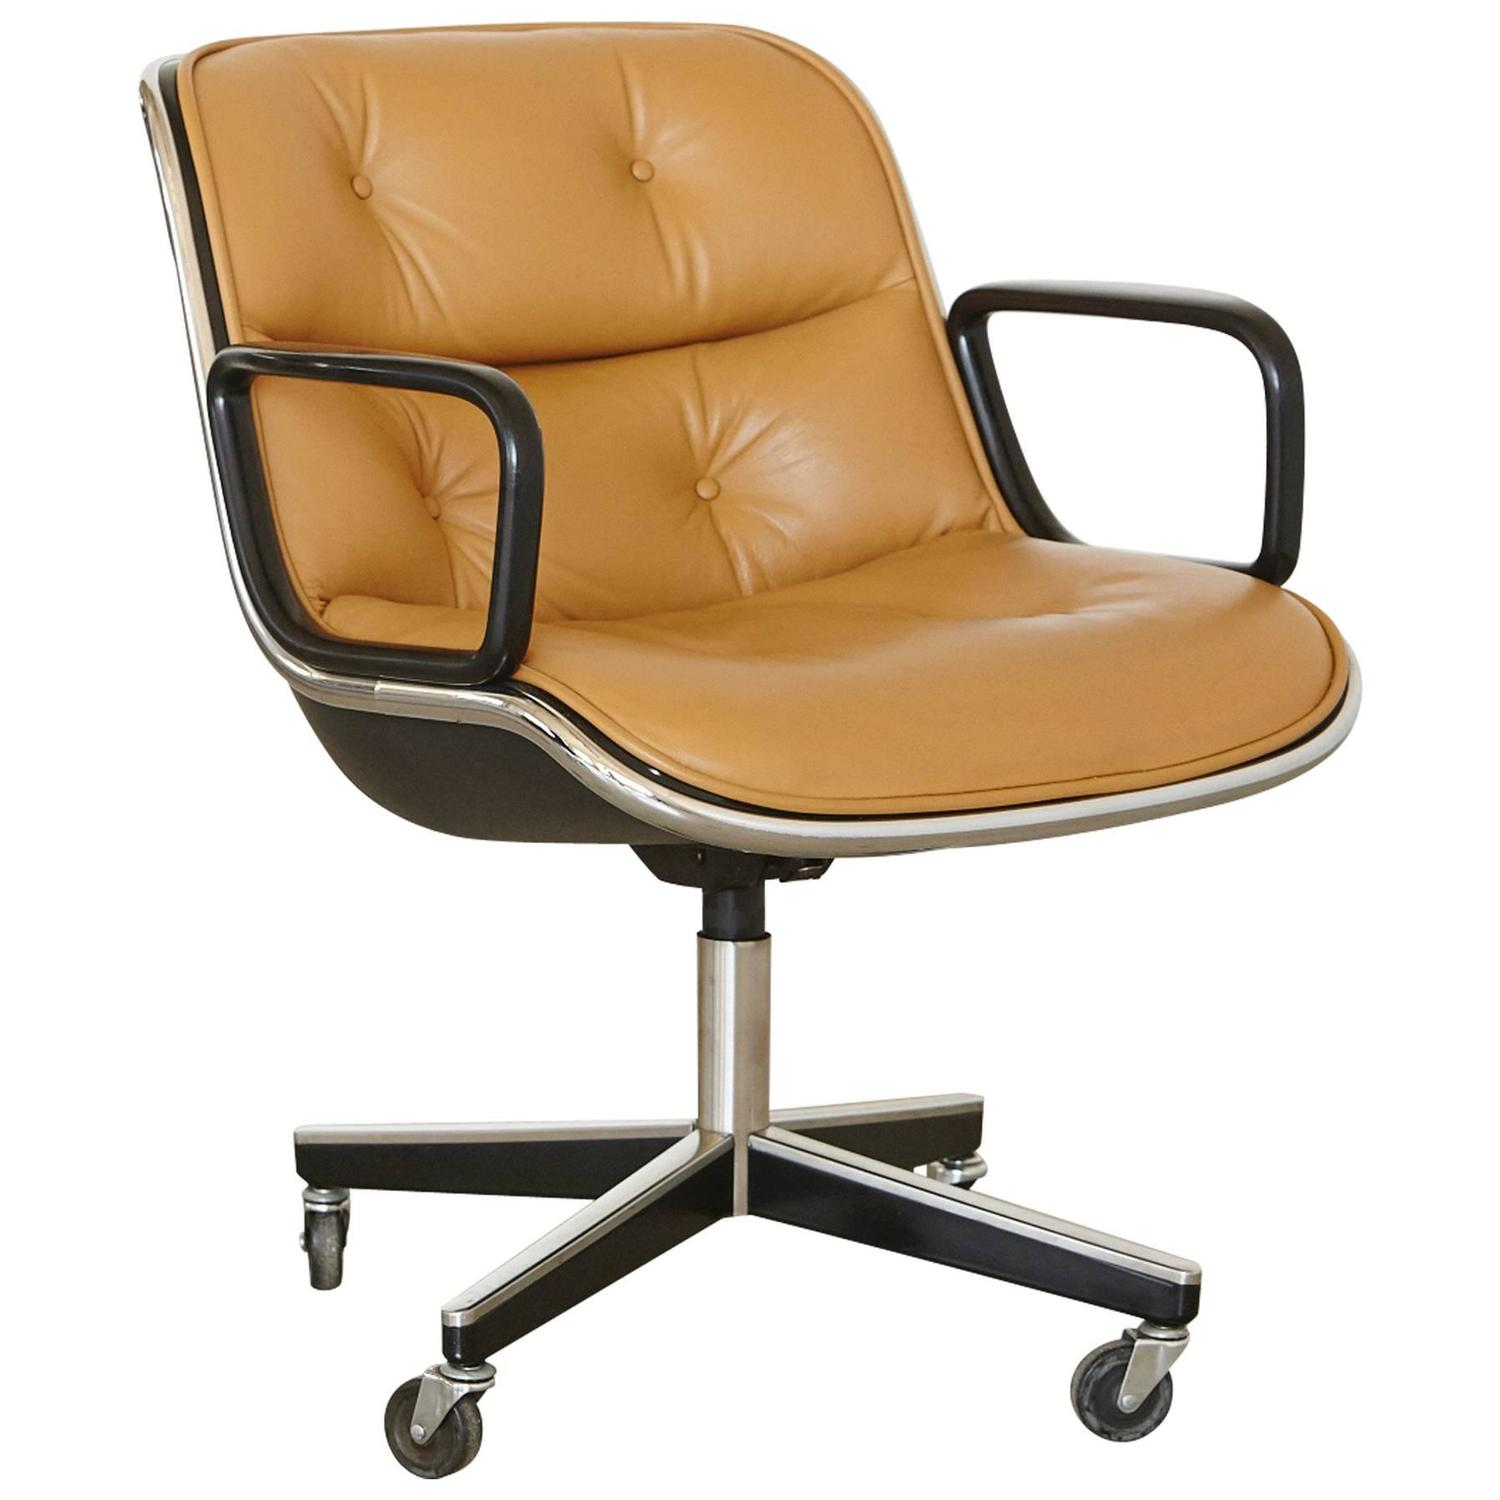 Charles pollock fice Chairs and Desk Chairs 30 For Sale at 1stdibs